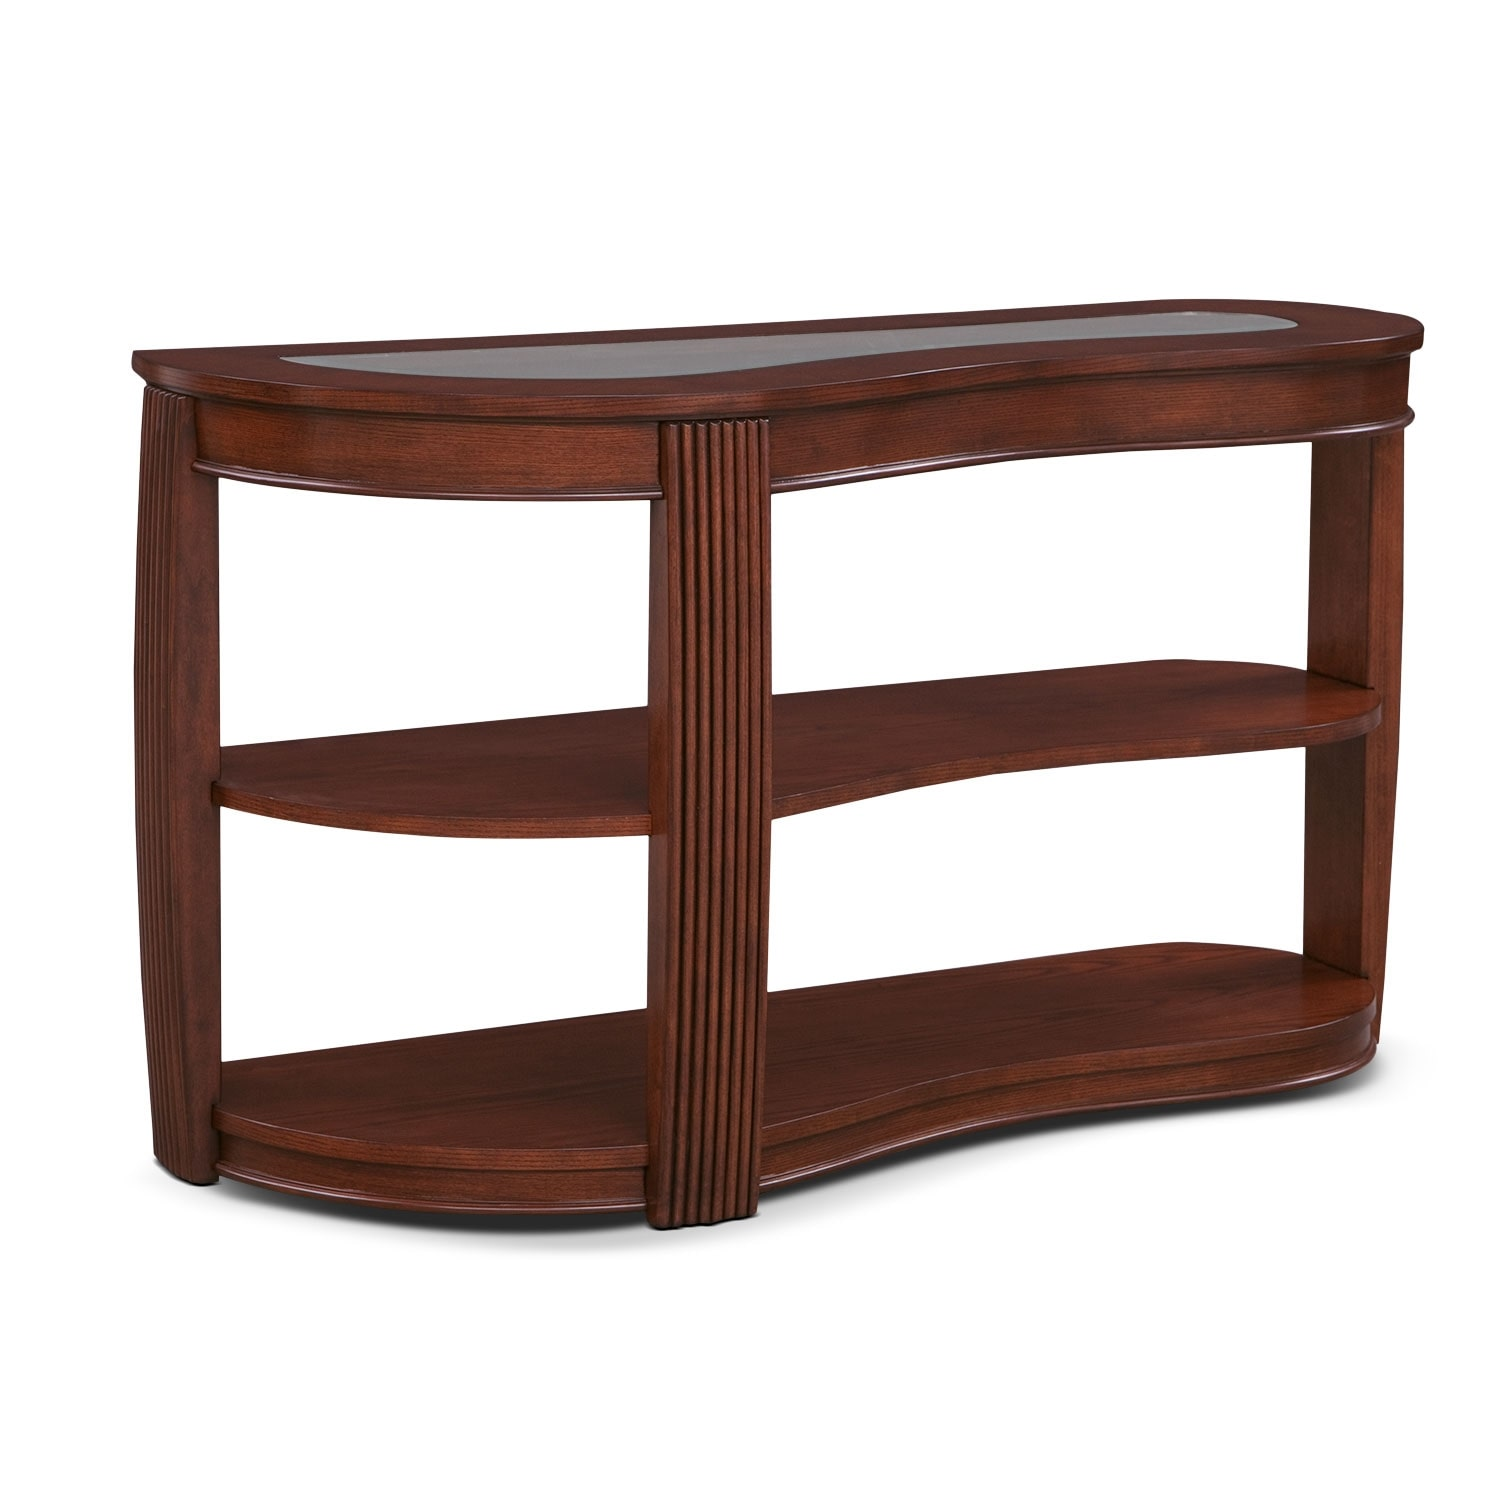 Accent and Occasional Furniture - Teardrop Sofa Table - Burnt Umber